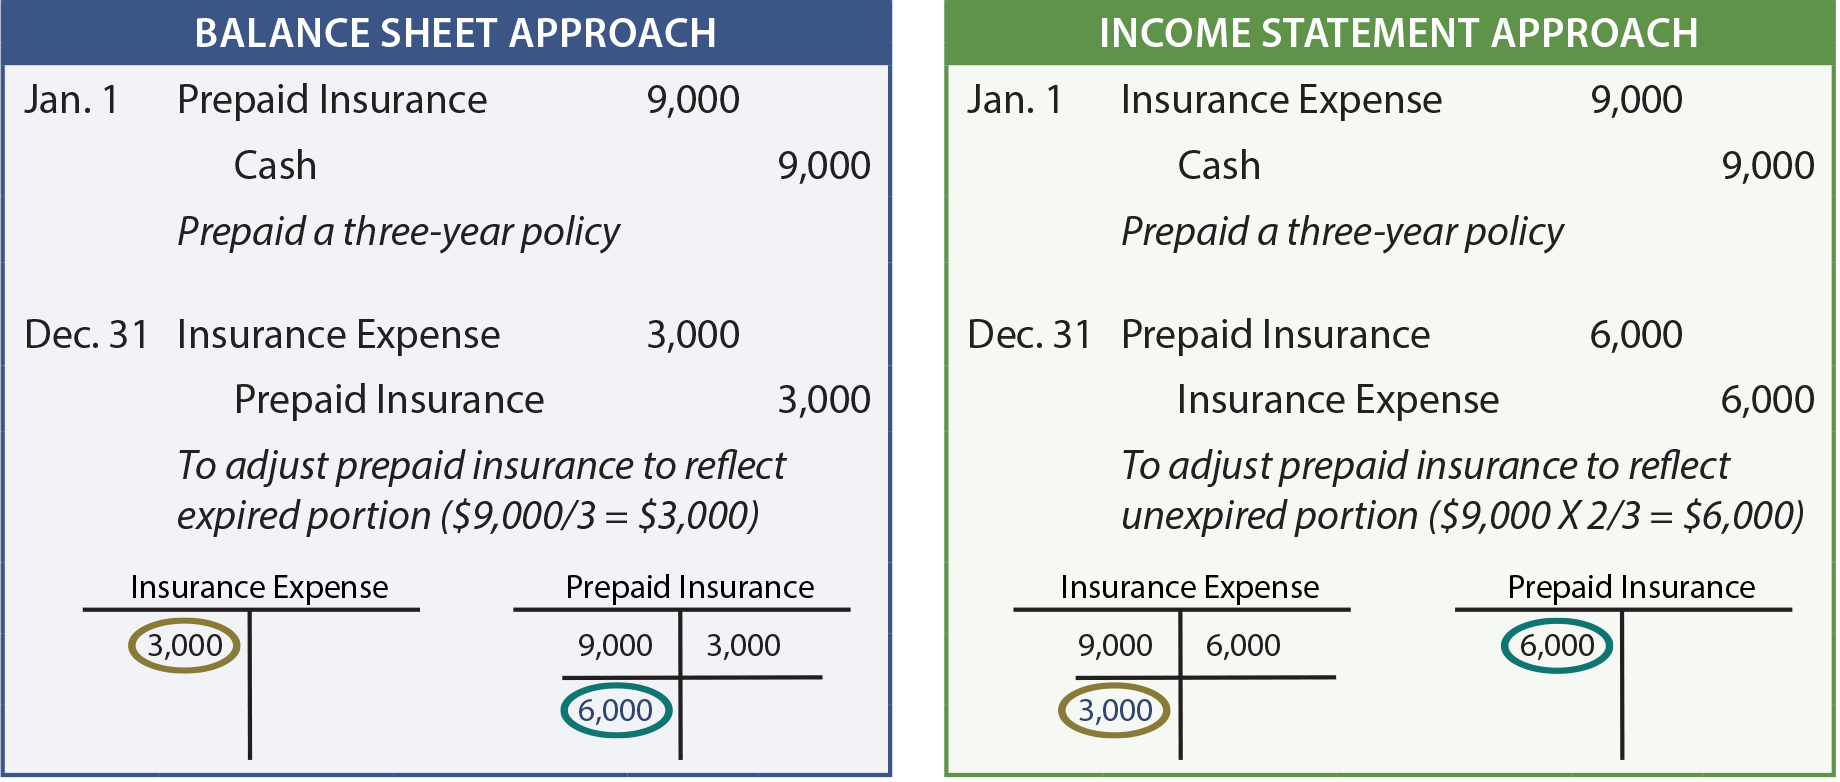 Balance sheet approach versus the income statement approach